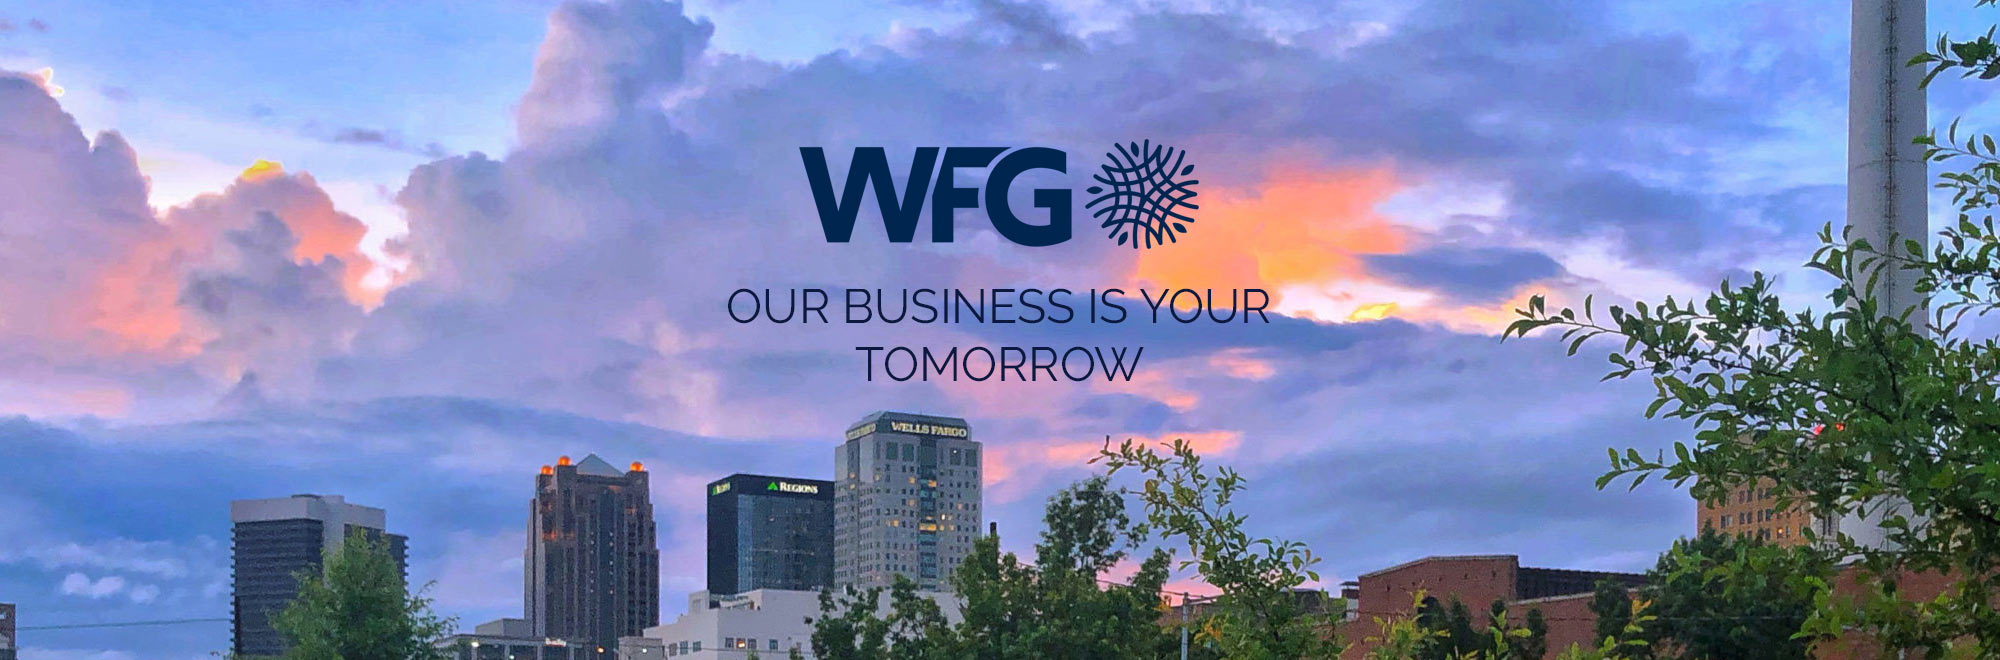 Our Business Is Your Tomorrow